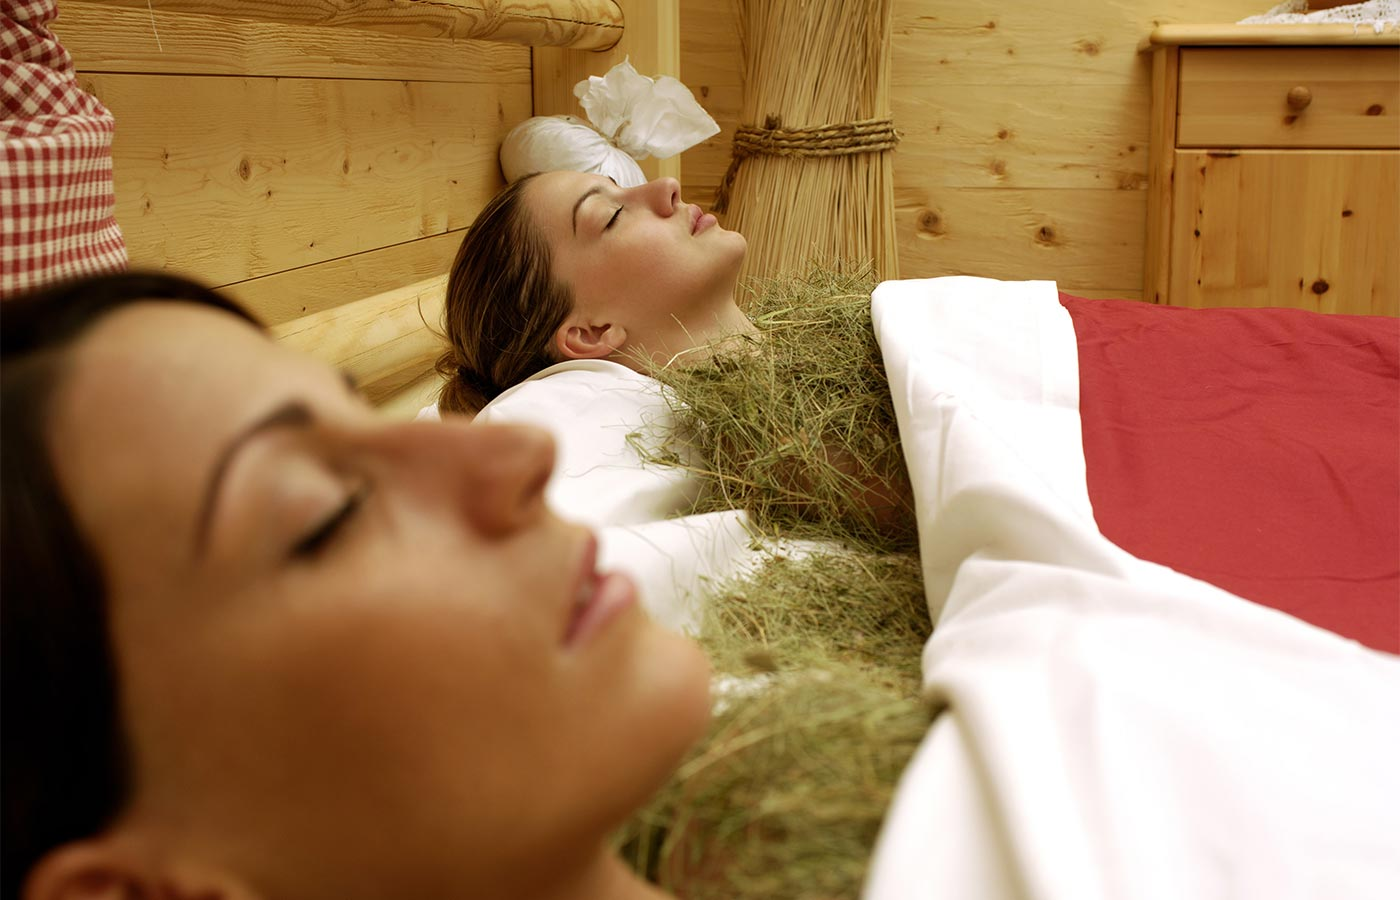 Two women relaxed during the hay bath